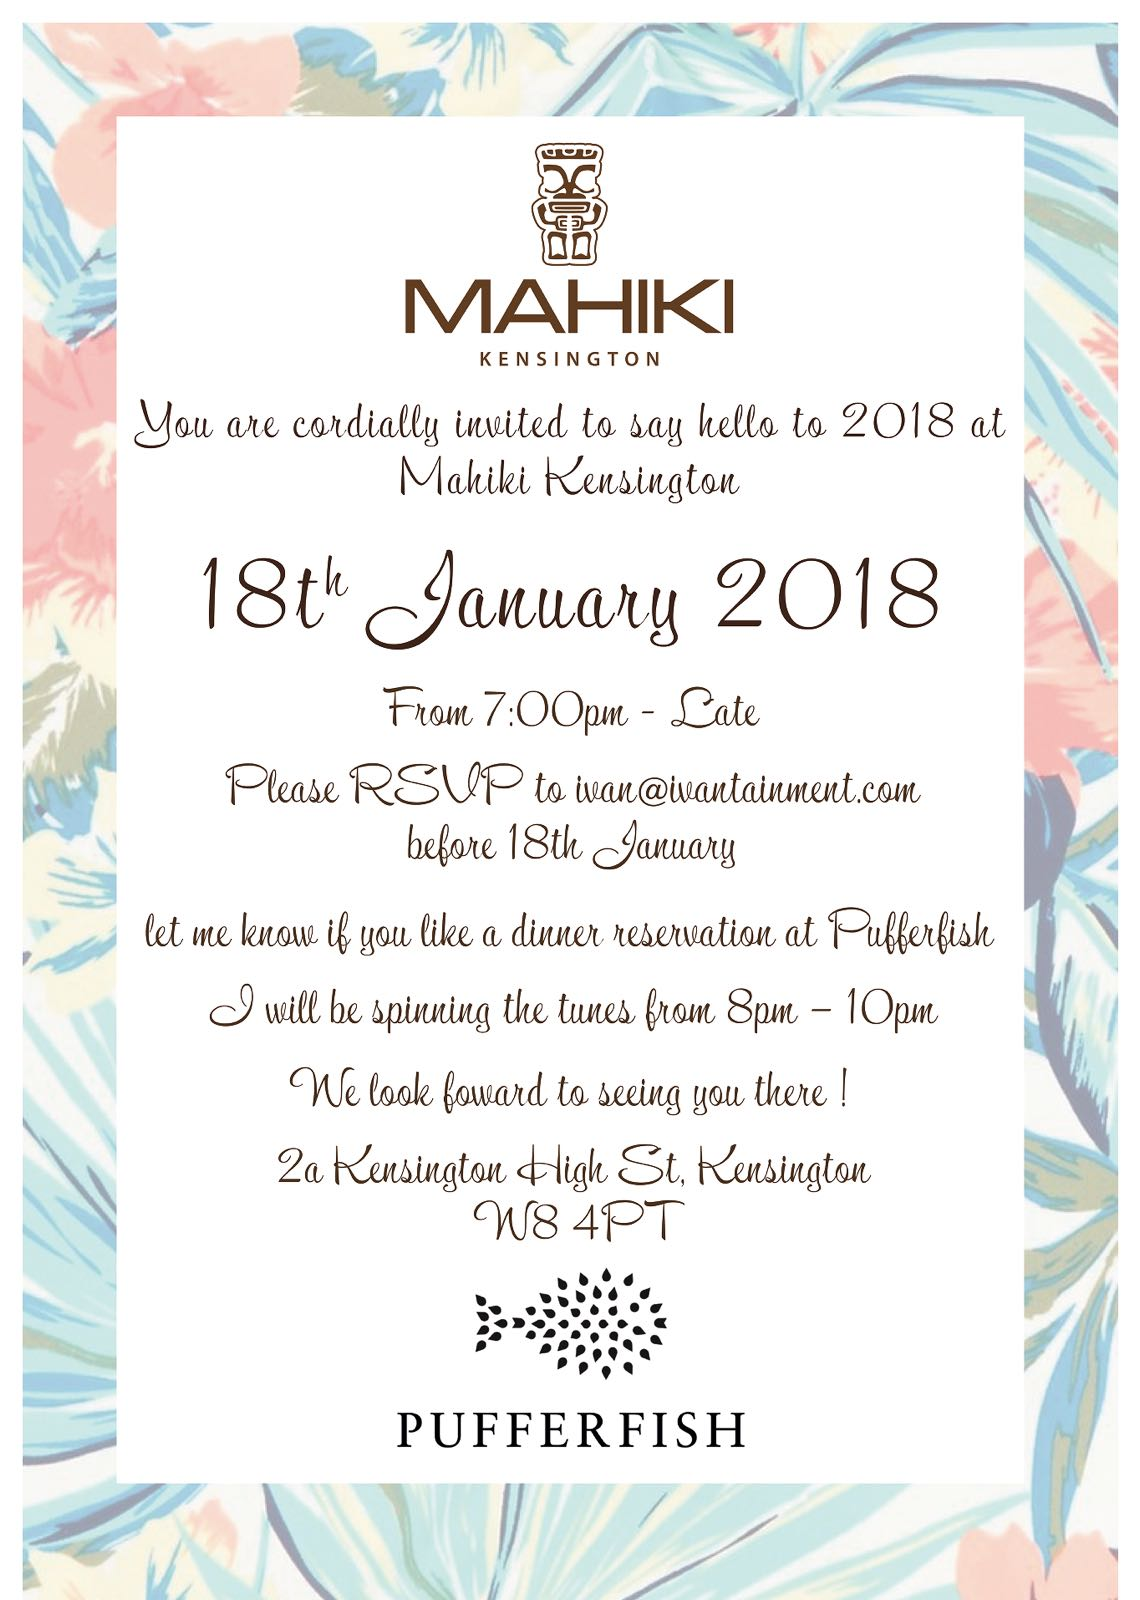 Mahiki Kensington Launch Party